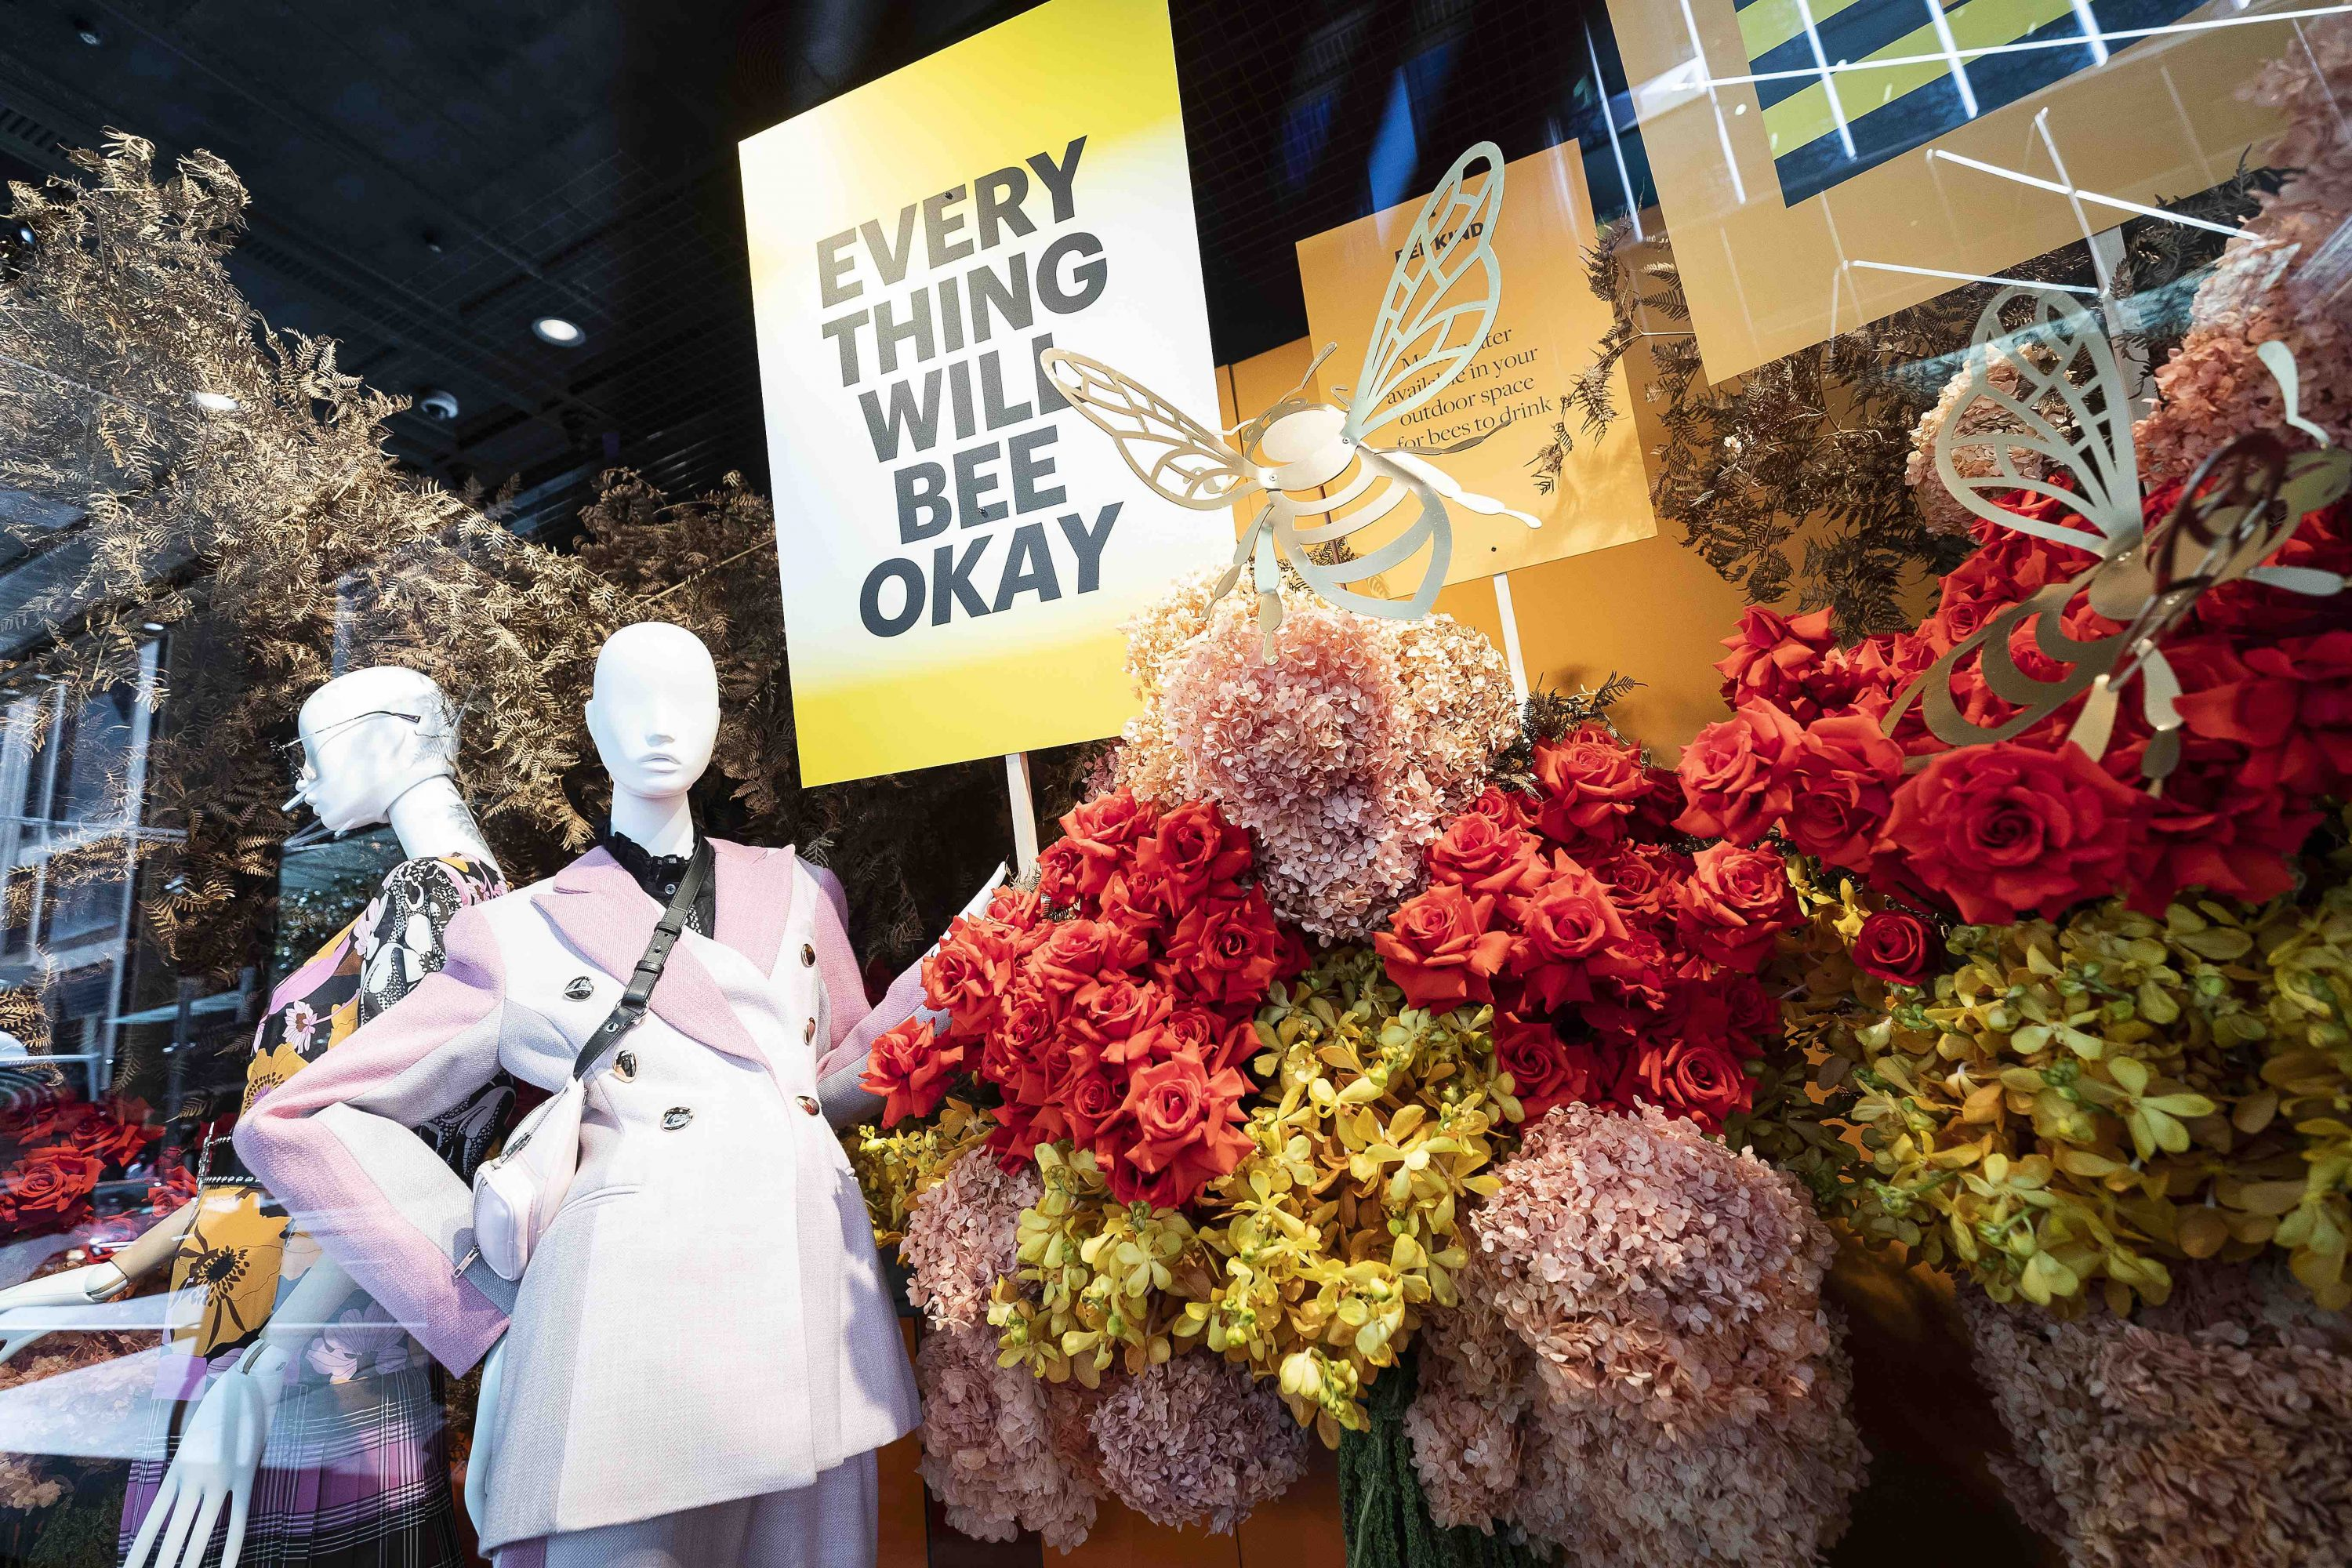 Images from the 35th annual Spring Flower Show at the Elizabeth Street, Sydney flagship of Australian department store David Jones.